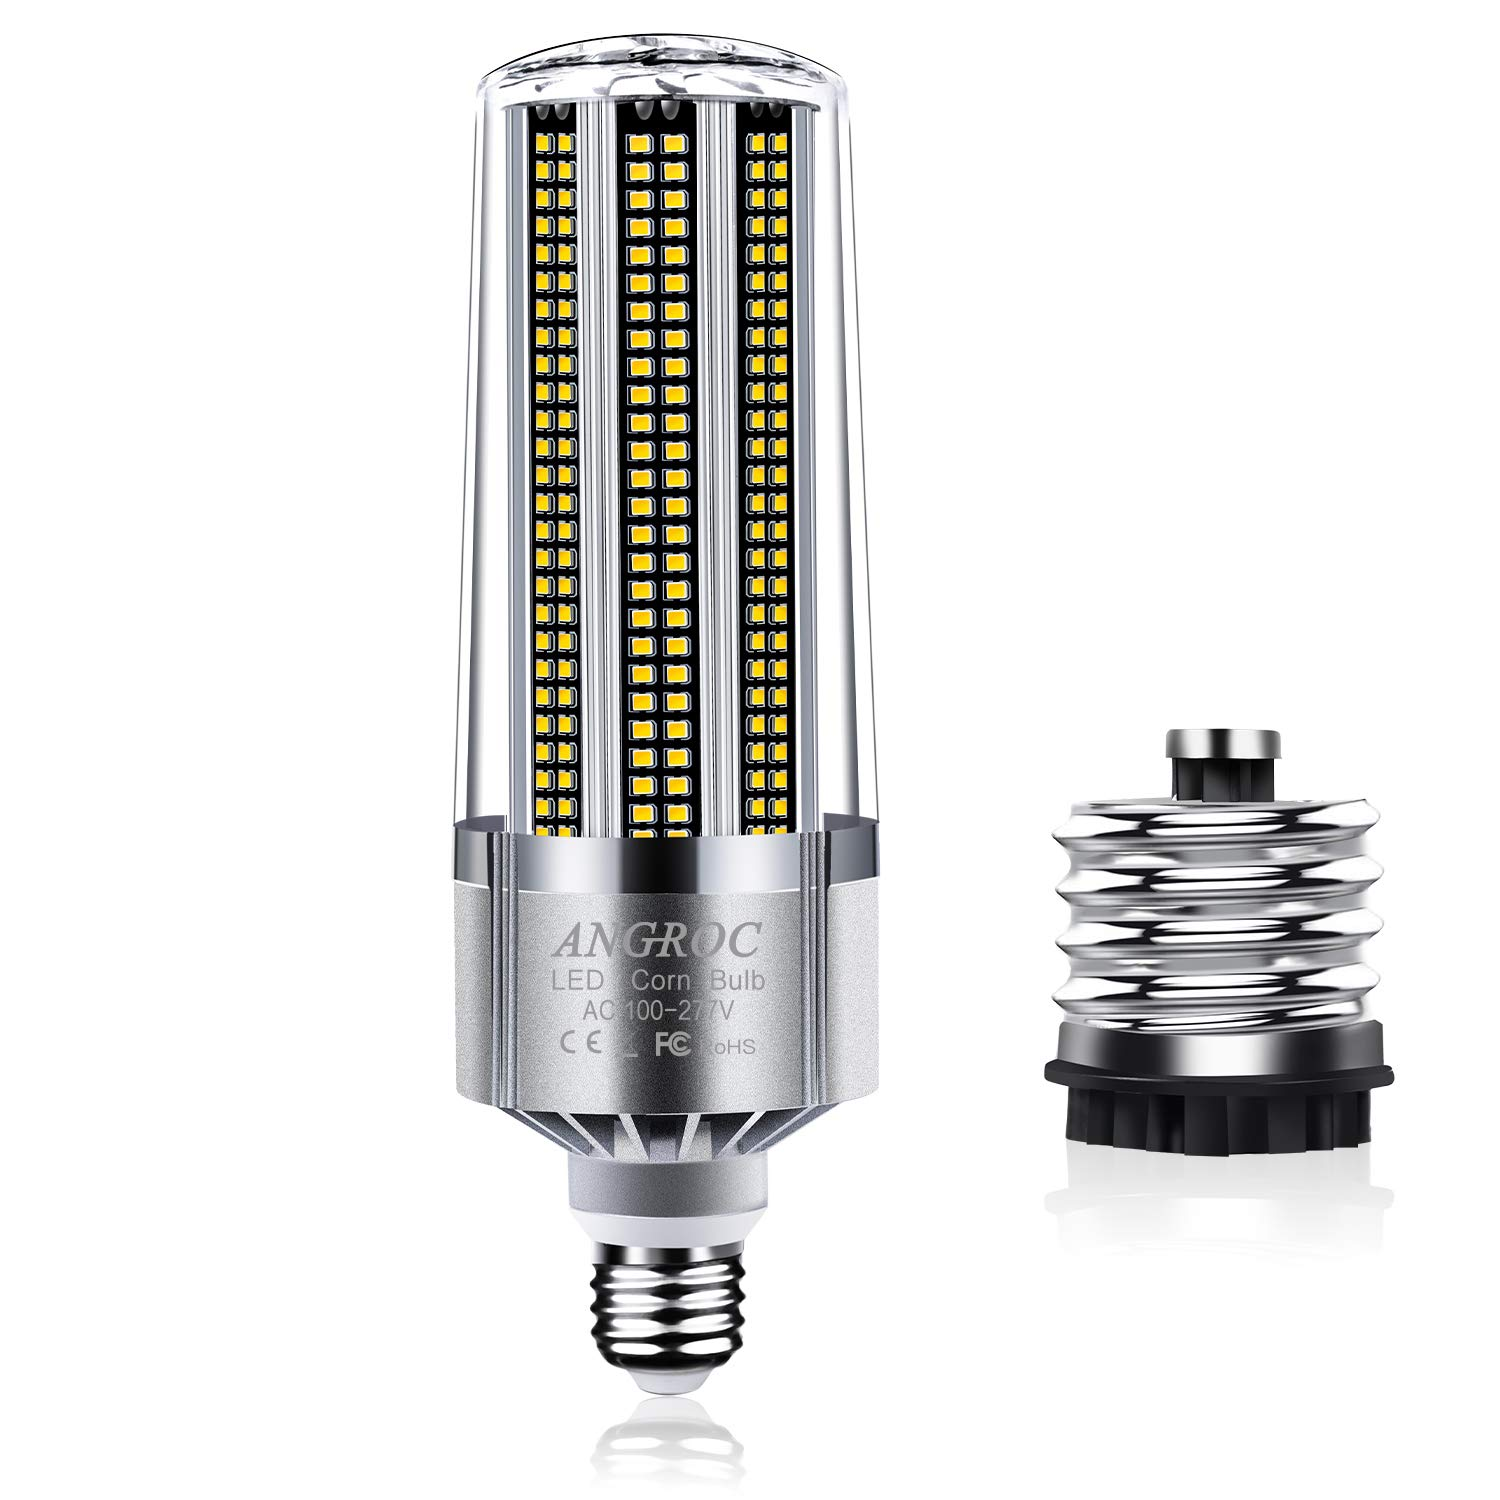 ANGROC 60W Super Bright LED Corn Lamp Bulb 6000K Cool White Daylight 700W Equivalent 7000 Lumen E26 with E39 Mogul Base Adapter,for Home Garage Warehouse Factory Commercial Lighting and More